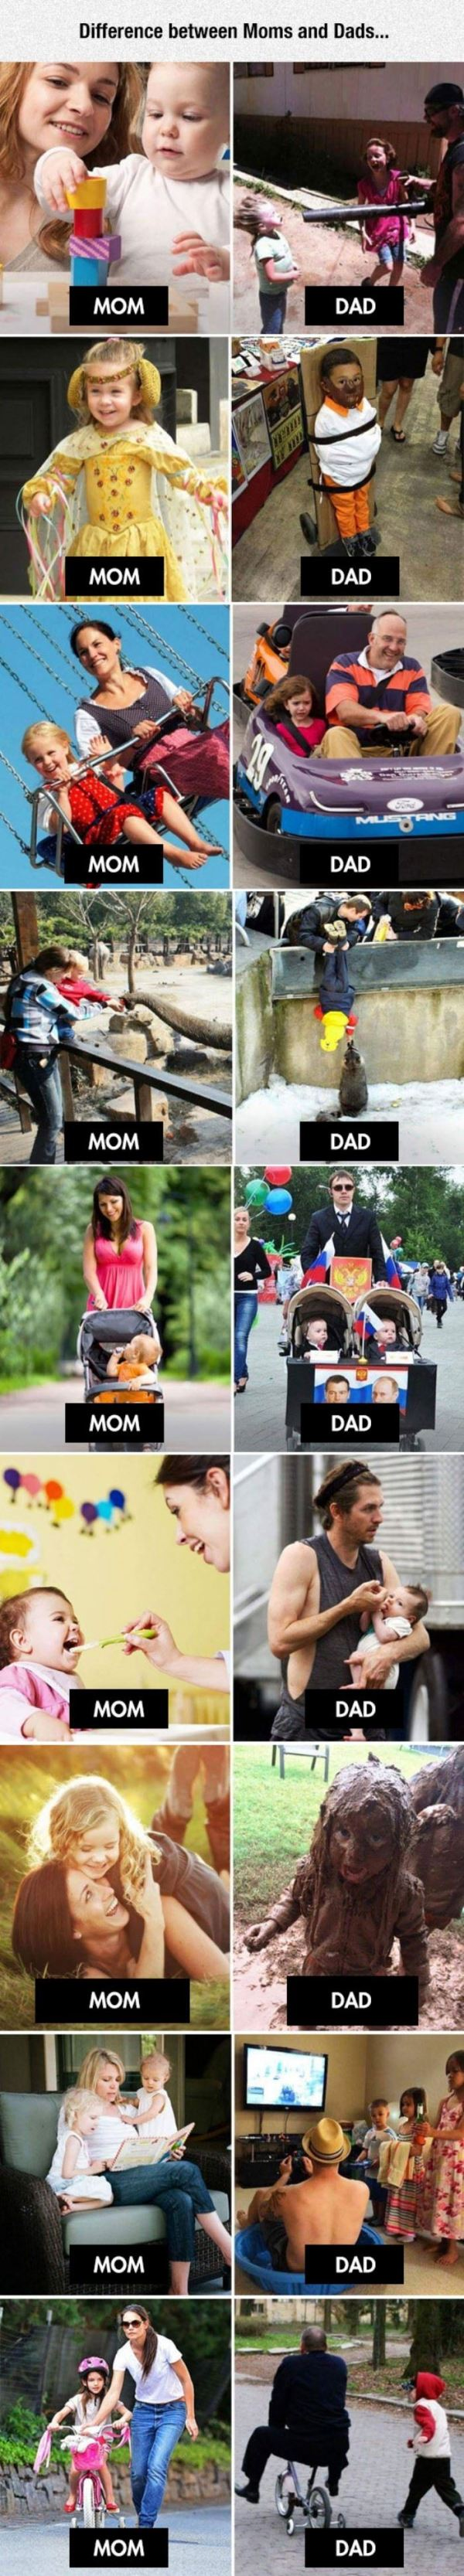 differences-between-moms-and-dads